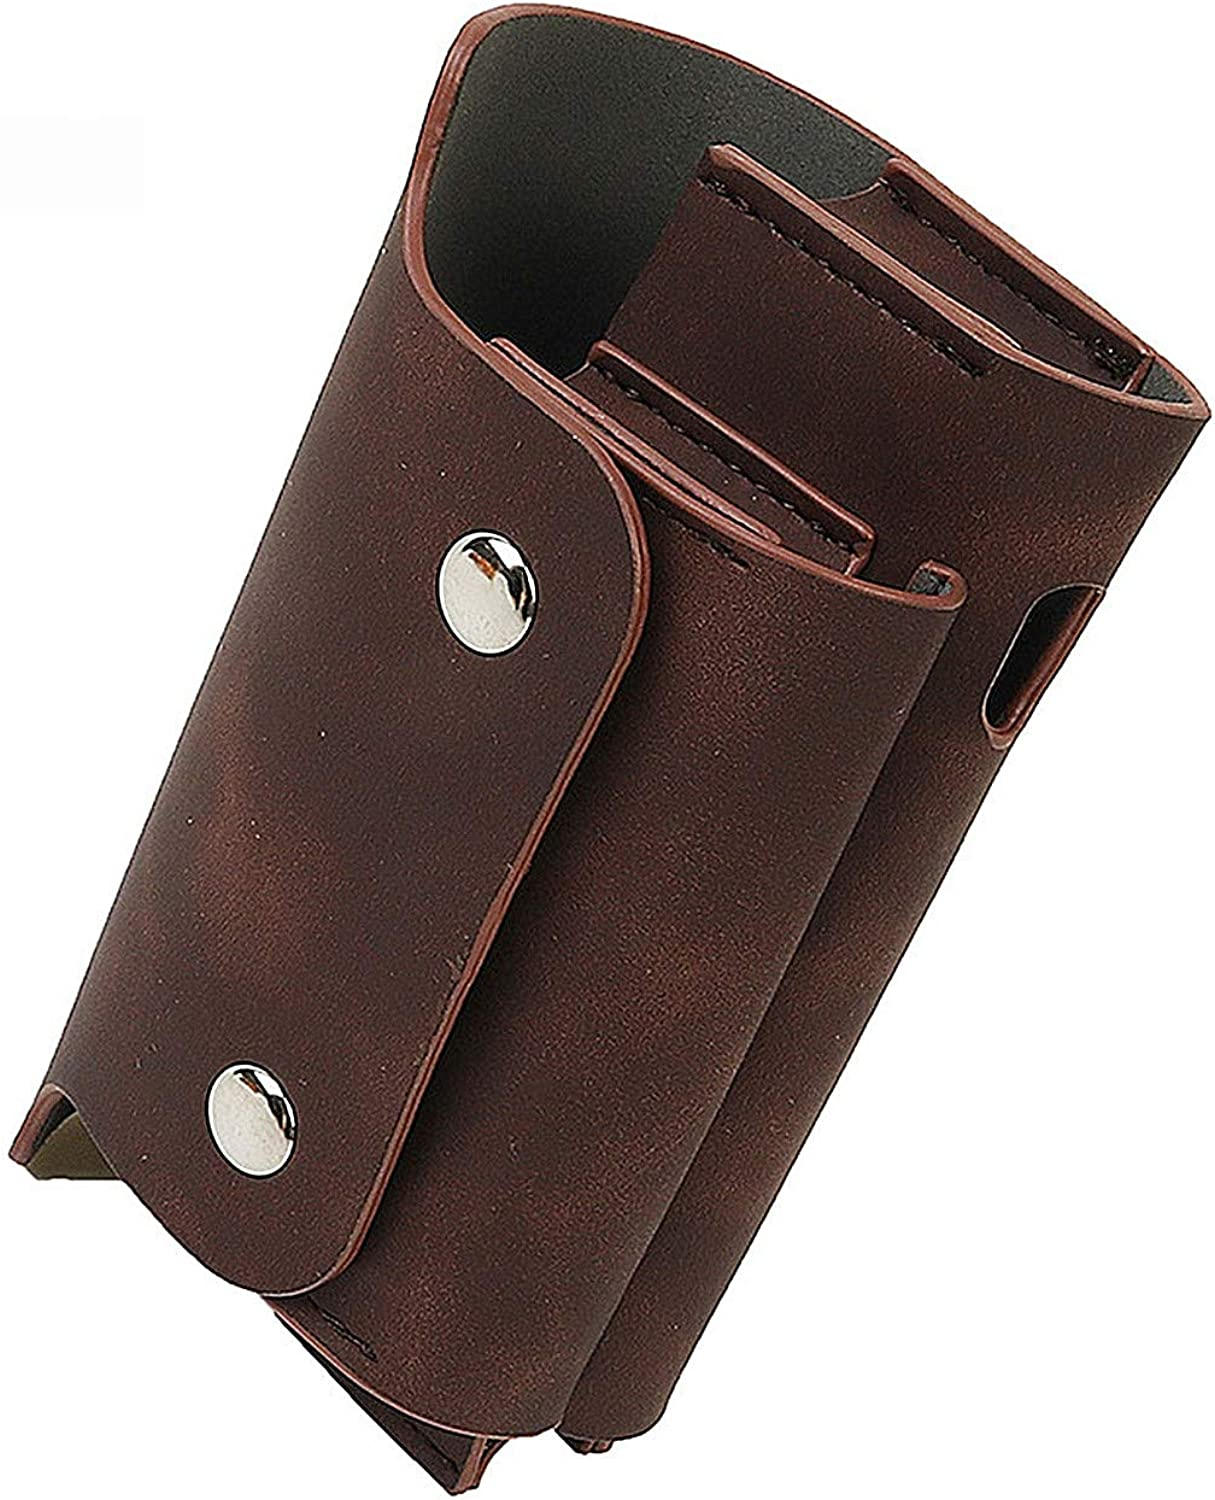 IQOS Pouch Bag,IQOS 3.0 Cigar Cover,Pressure Change Leather Waist Leather Cigarette Case with Clip Or Buckle(Case Only),Darkbrown